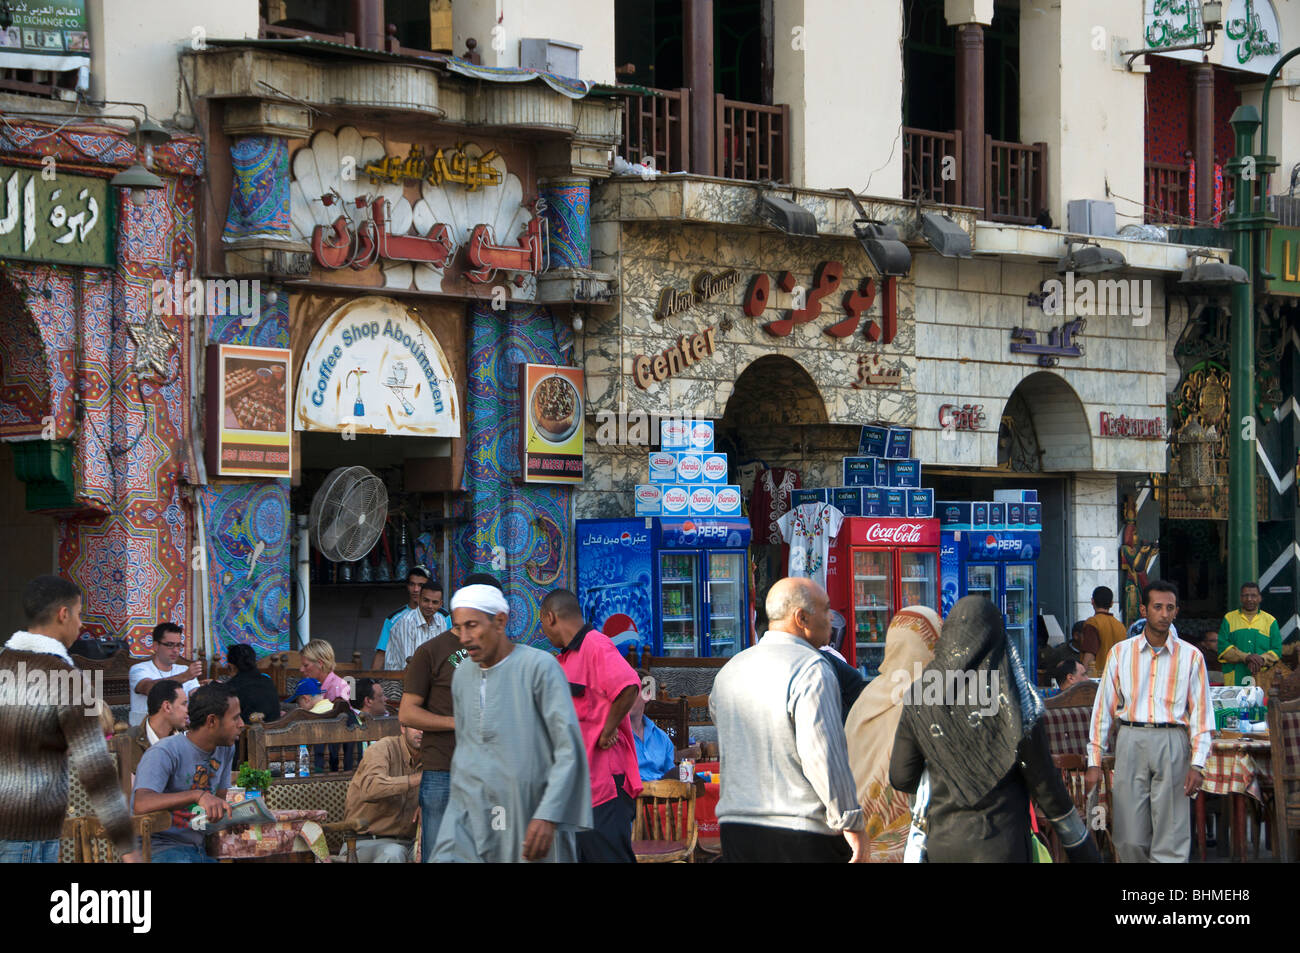 Shopping street scene cairo egypt stock photo 28110020 for Shopping in cairo